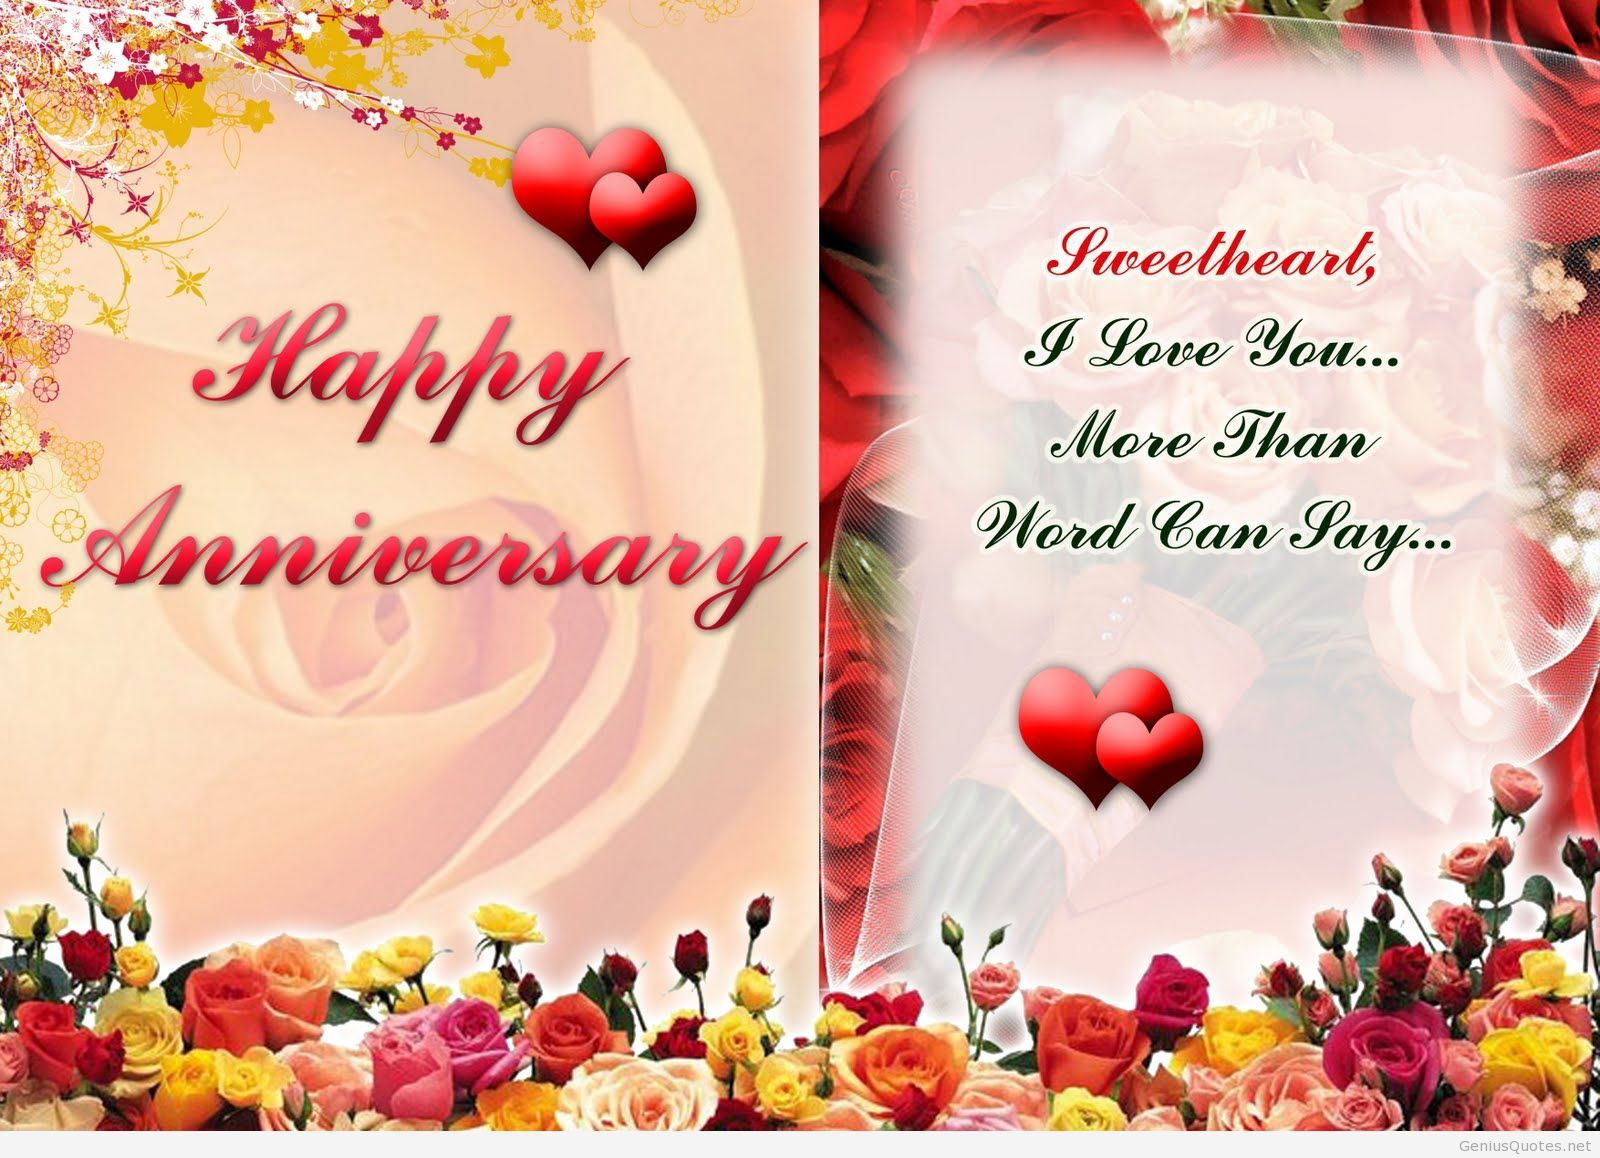 Happy anniversary hd wallpaper with quote anniversary pinterest